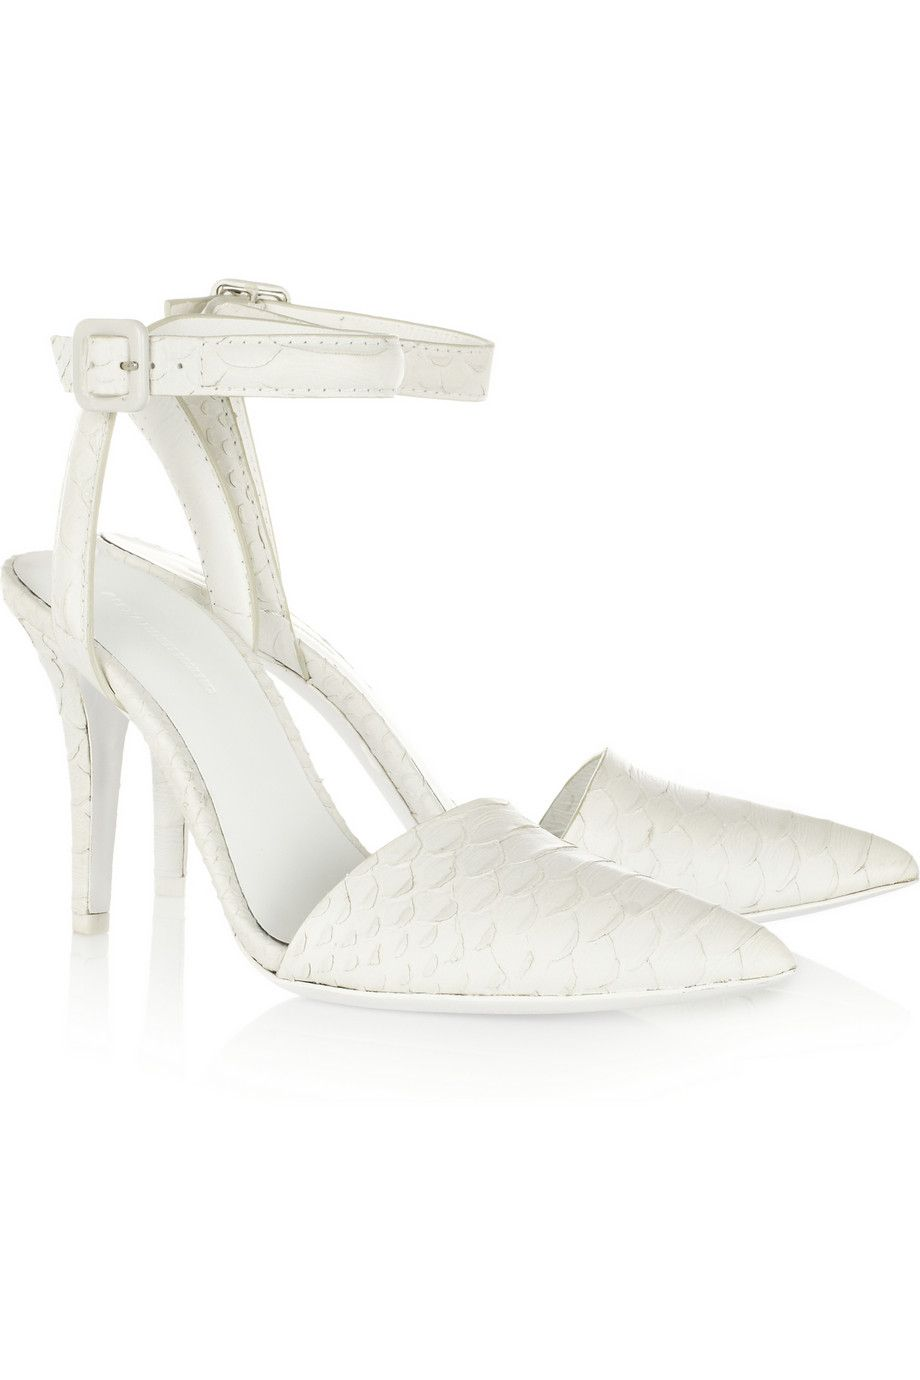 discount best store to get Alexander Wang Python Lovisa Pumps the cheapest sale online free shipping exclusive sale limited edition with credit card cheap online FZAnYiP